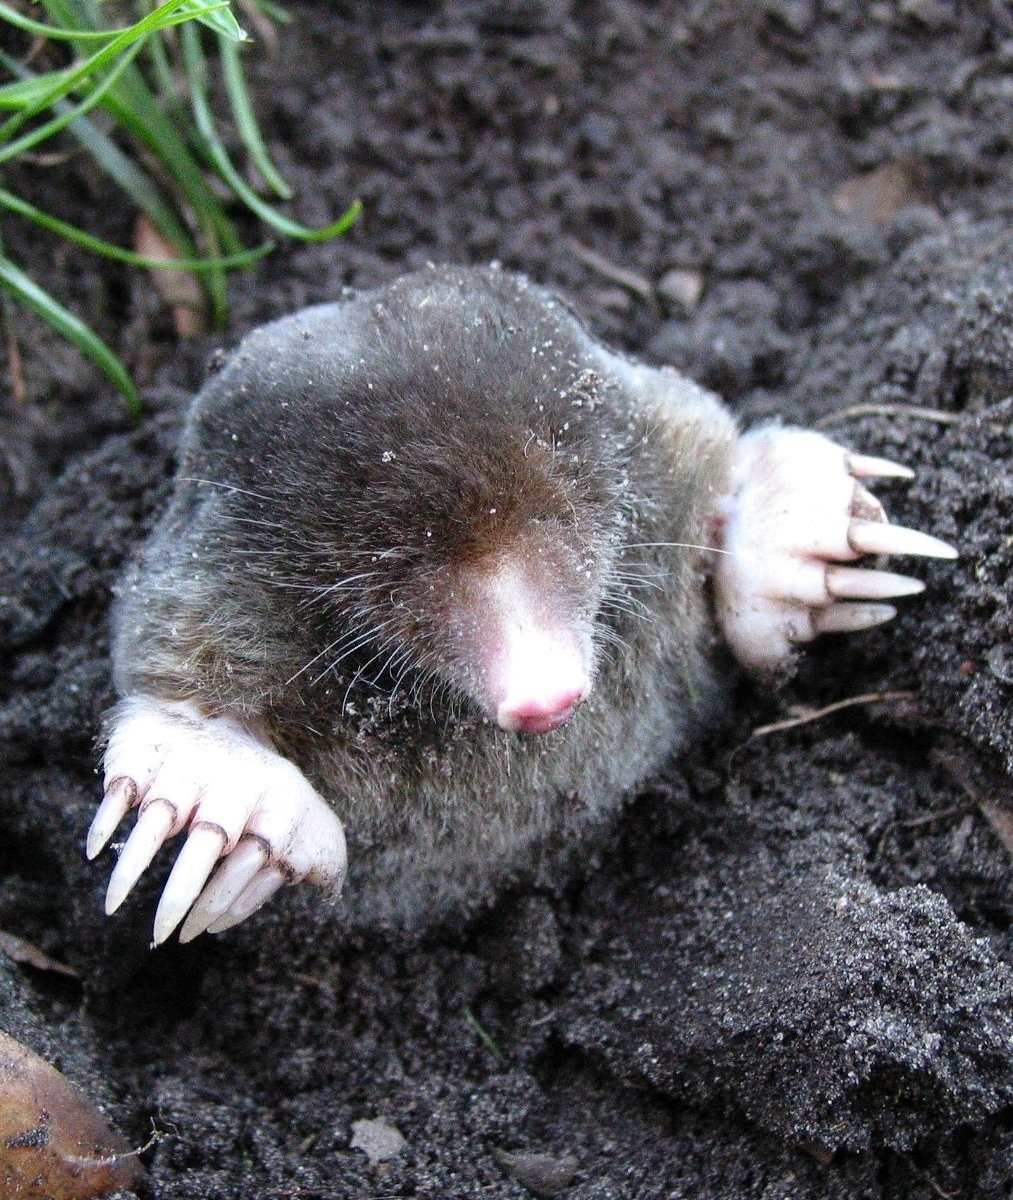 An image of a mole emerging from the ground.